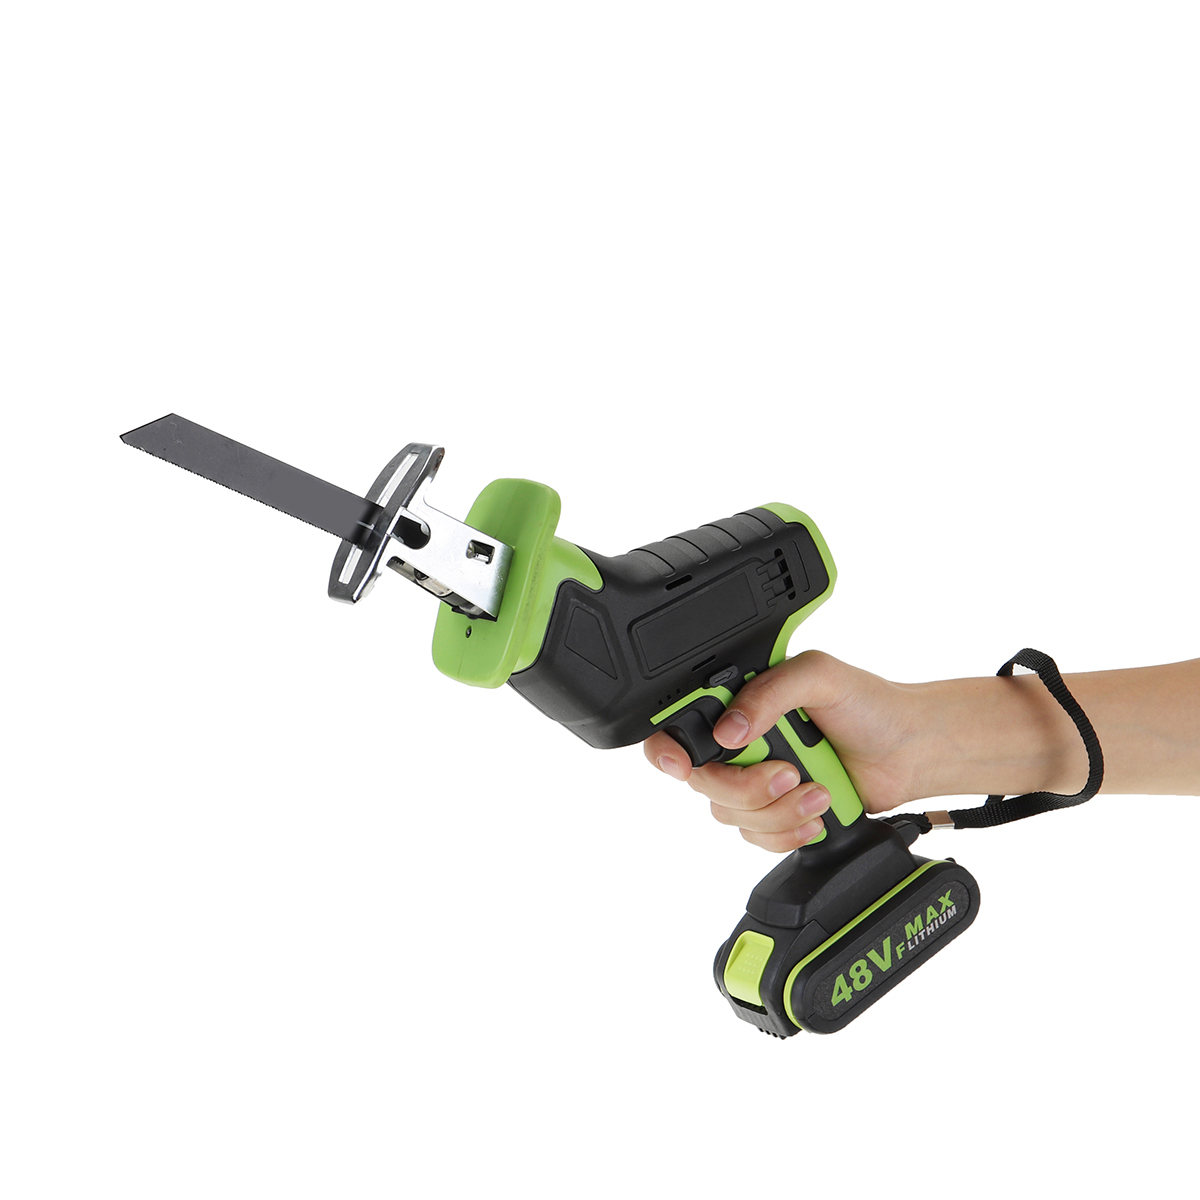 Wood Drillpro With Woodworking 4 Cordless 2 Cutters Metal Saw Saw Cutting  Batterys  1 Blades 48V Reciprocating Portable Tool